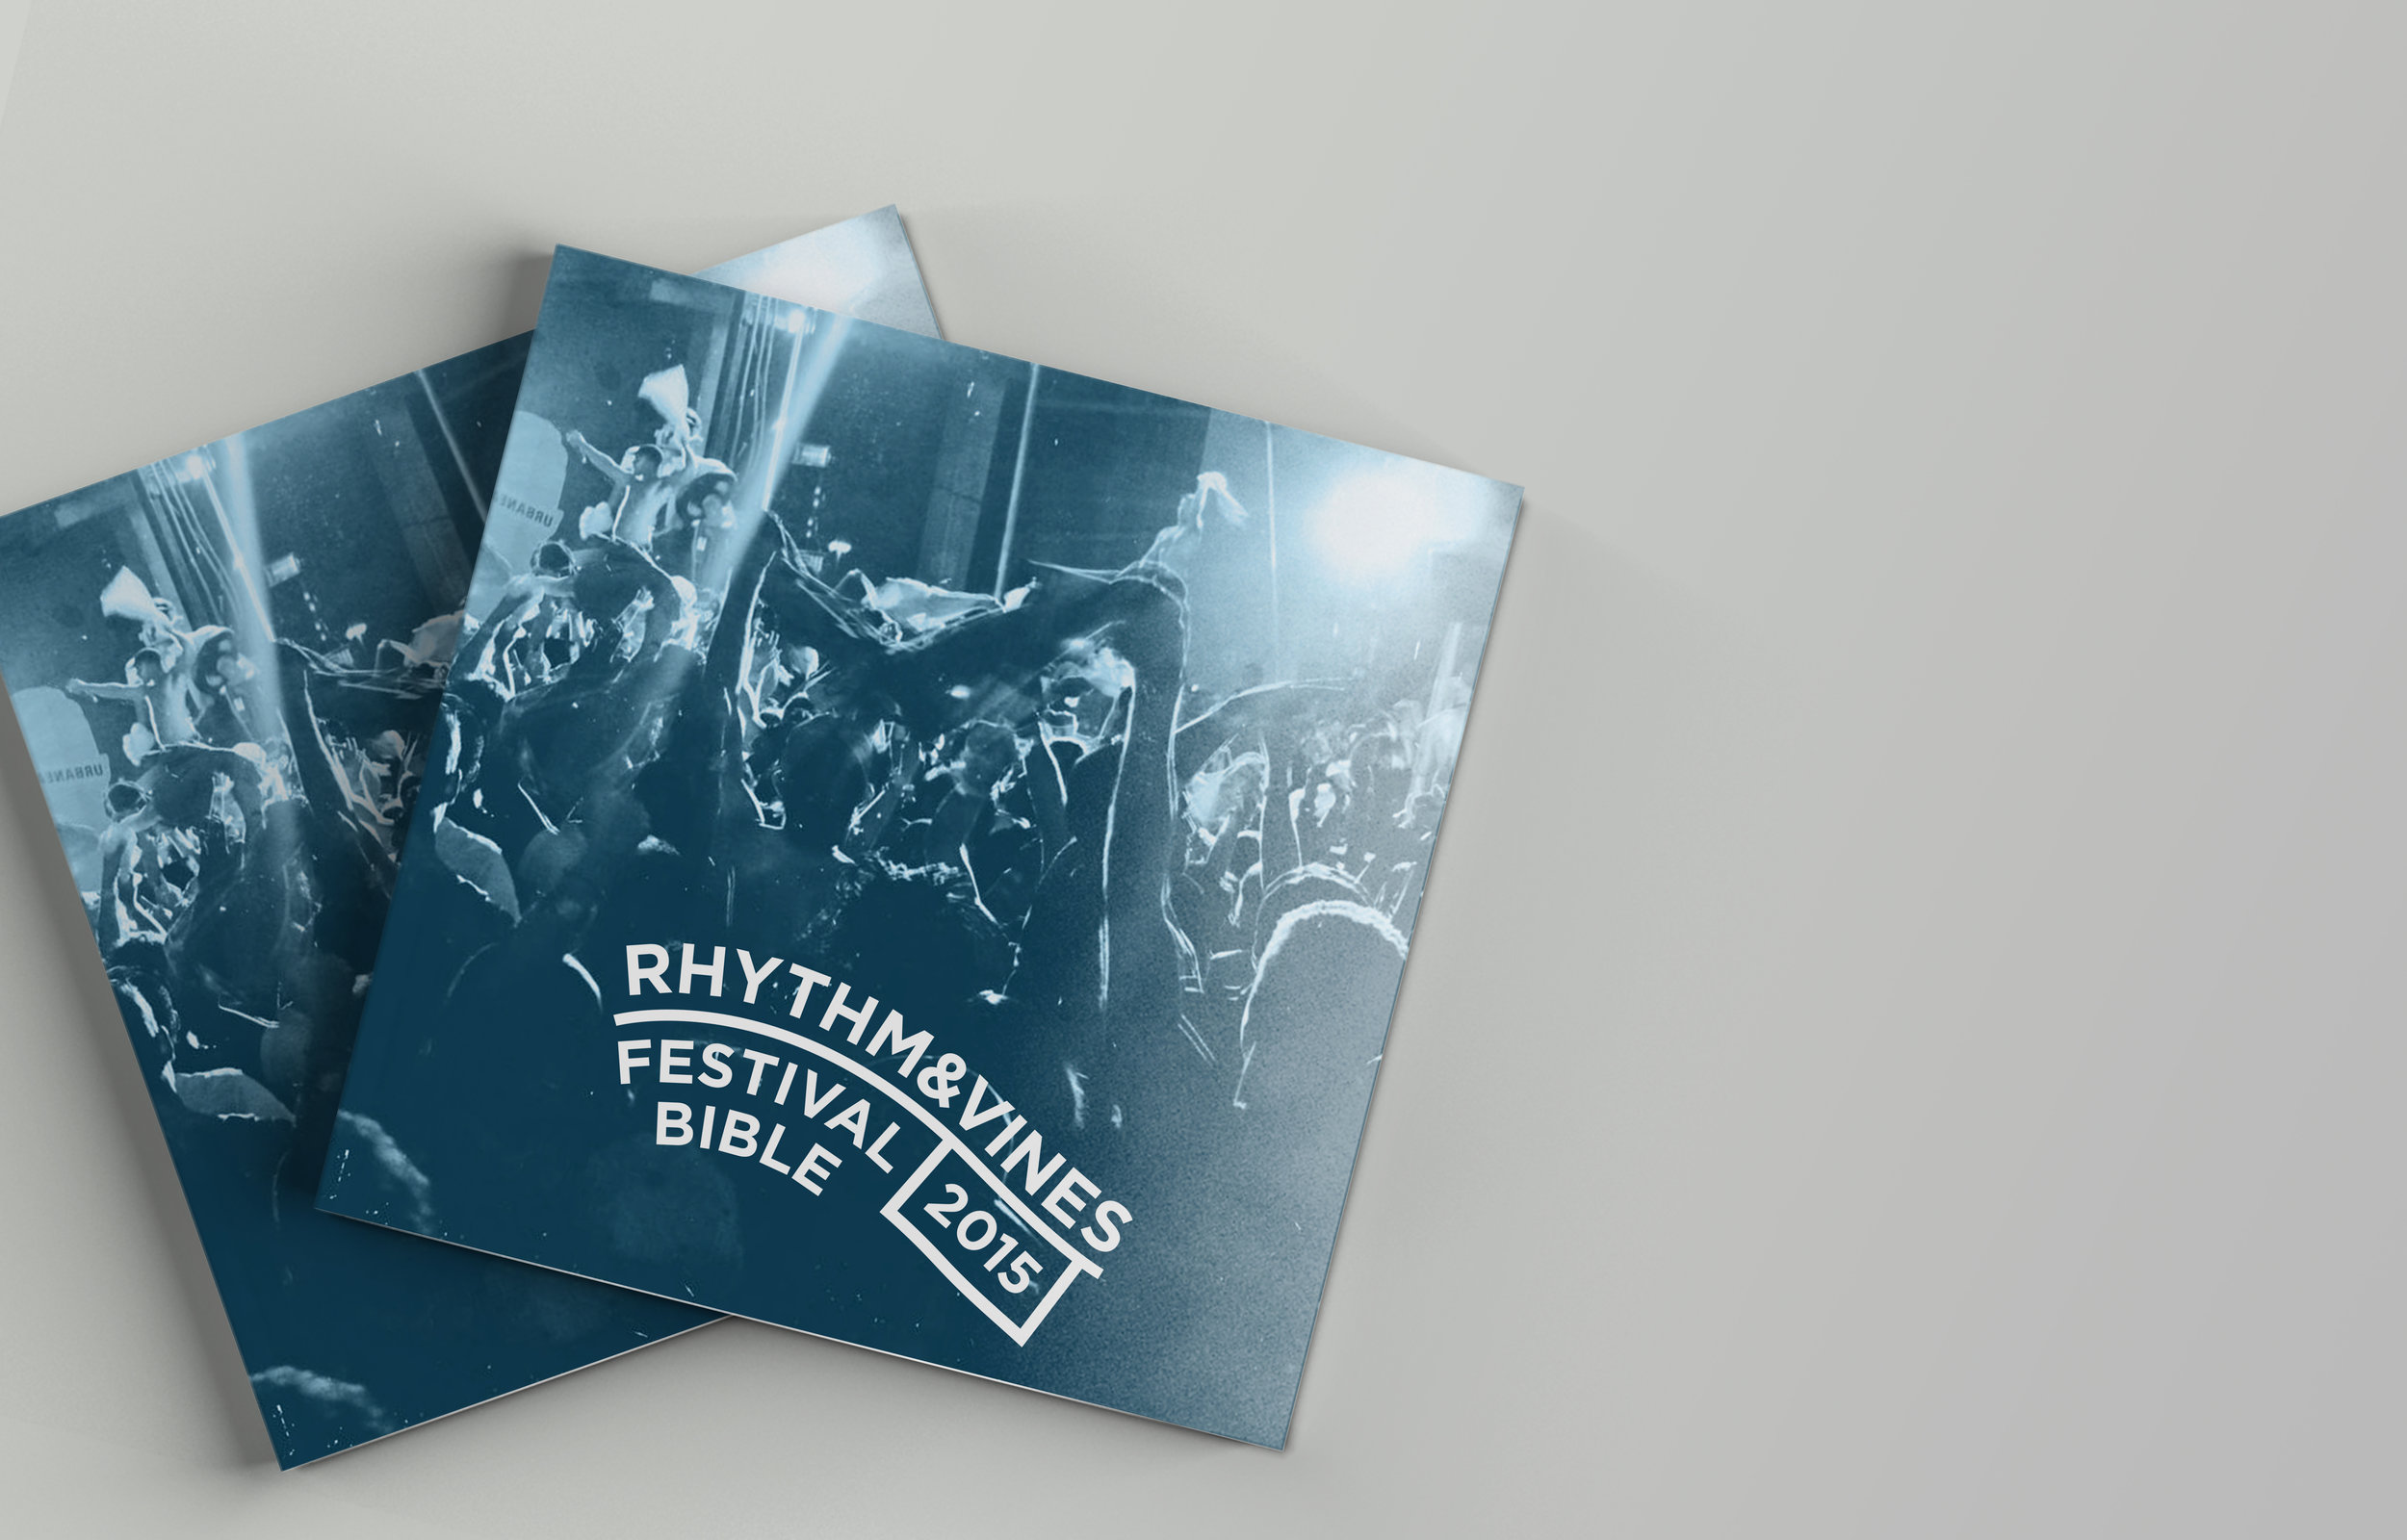 Rhythm and Vines Festival    A festival pack for the 2015 Rhythm and Vines Festival